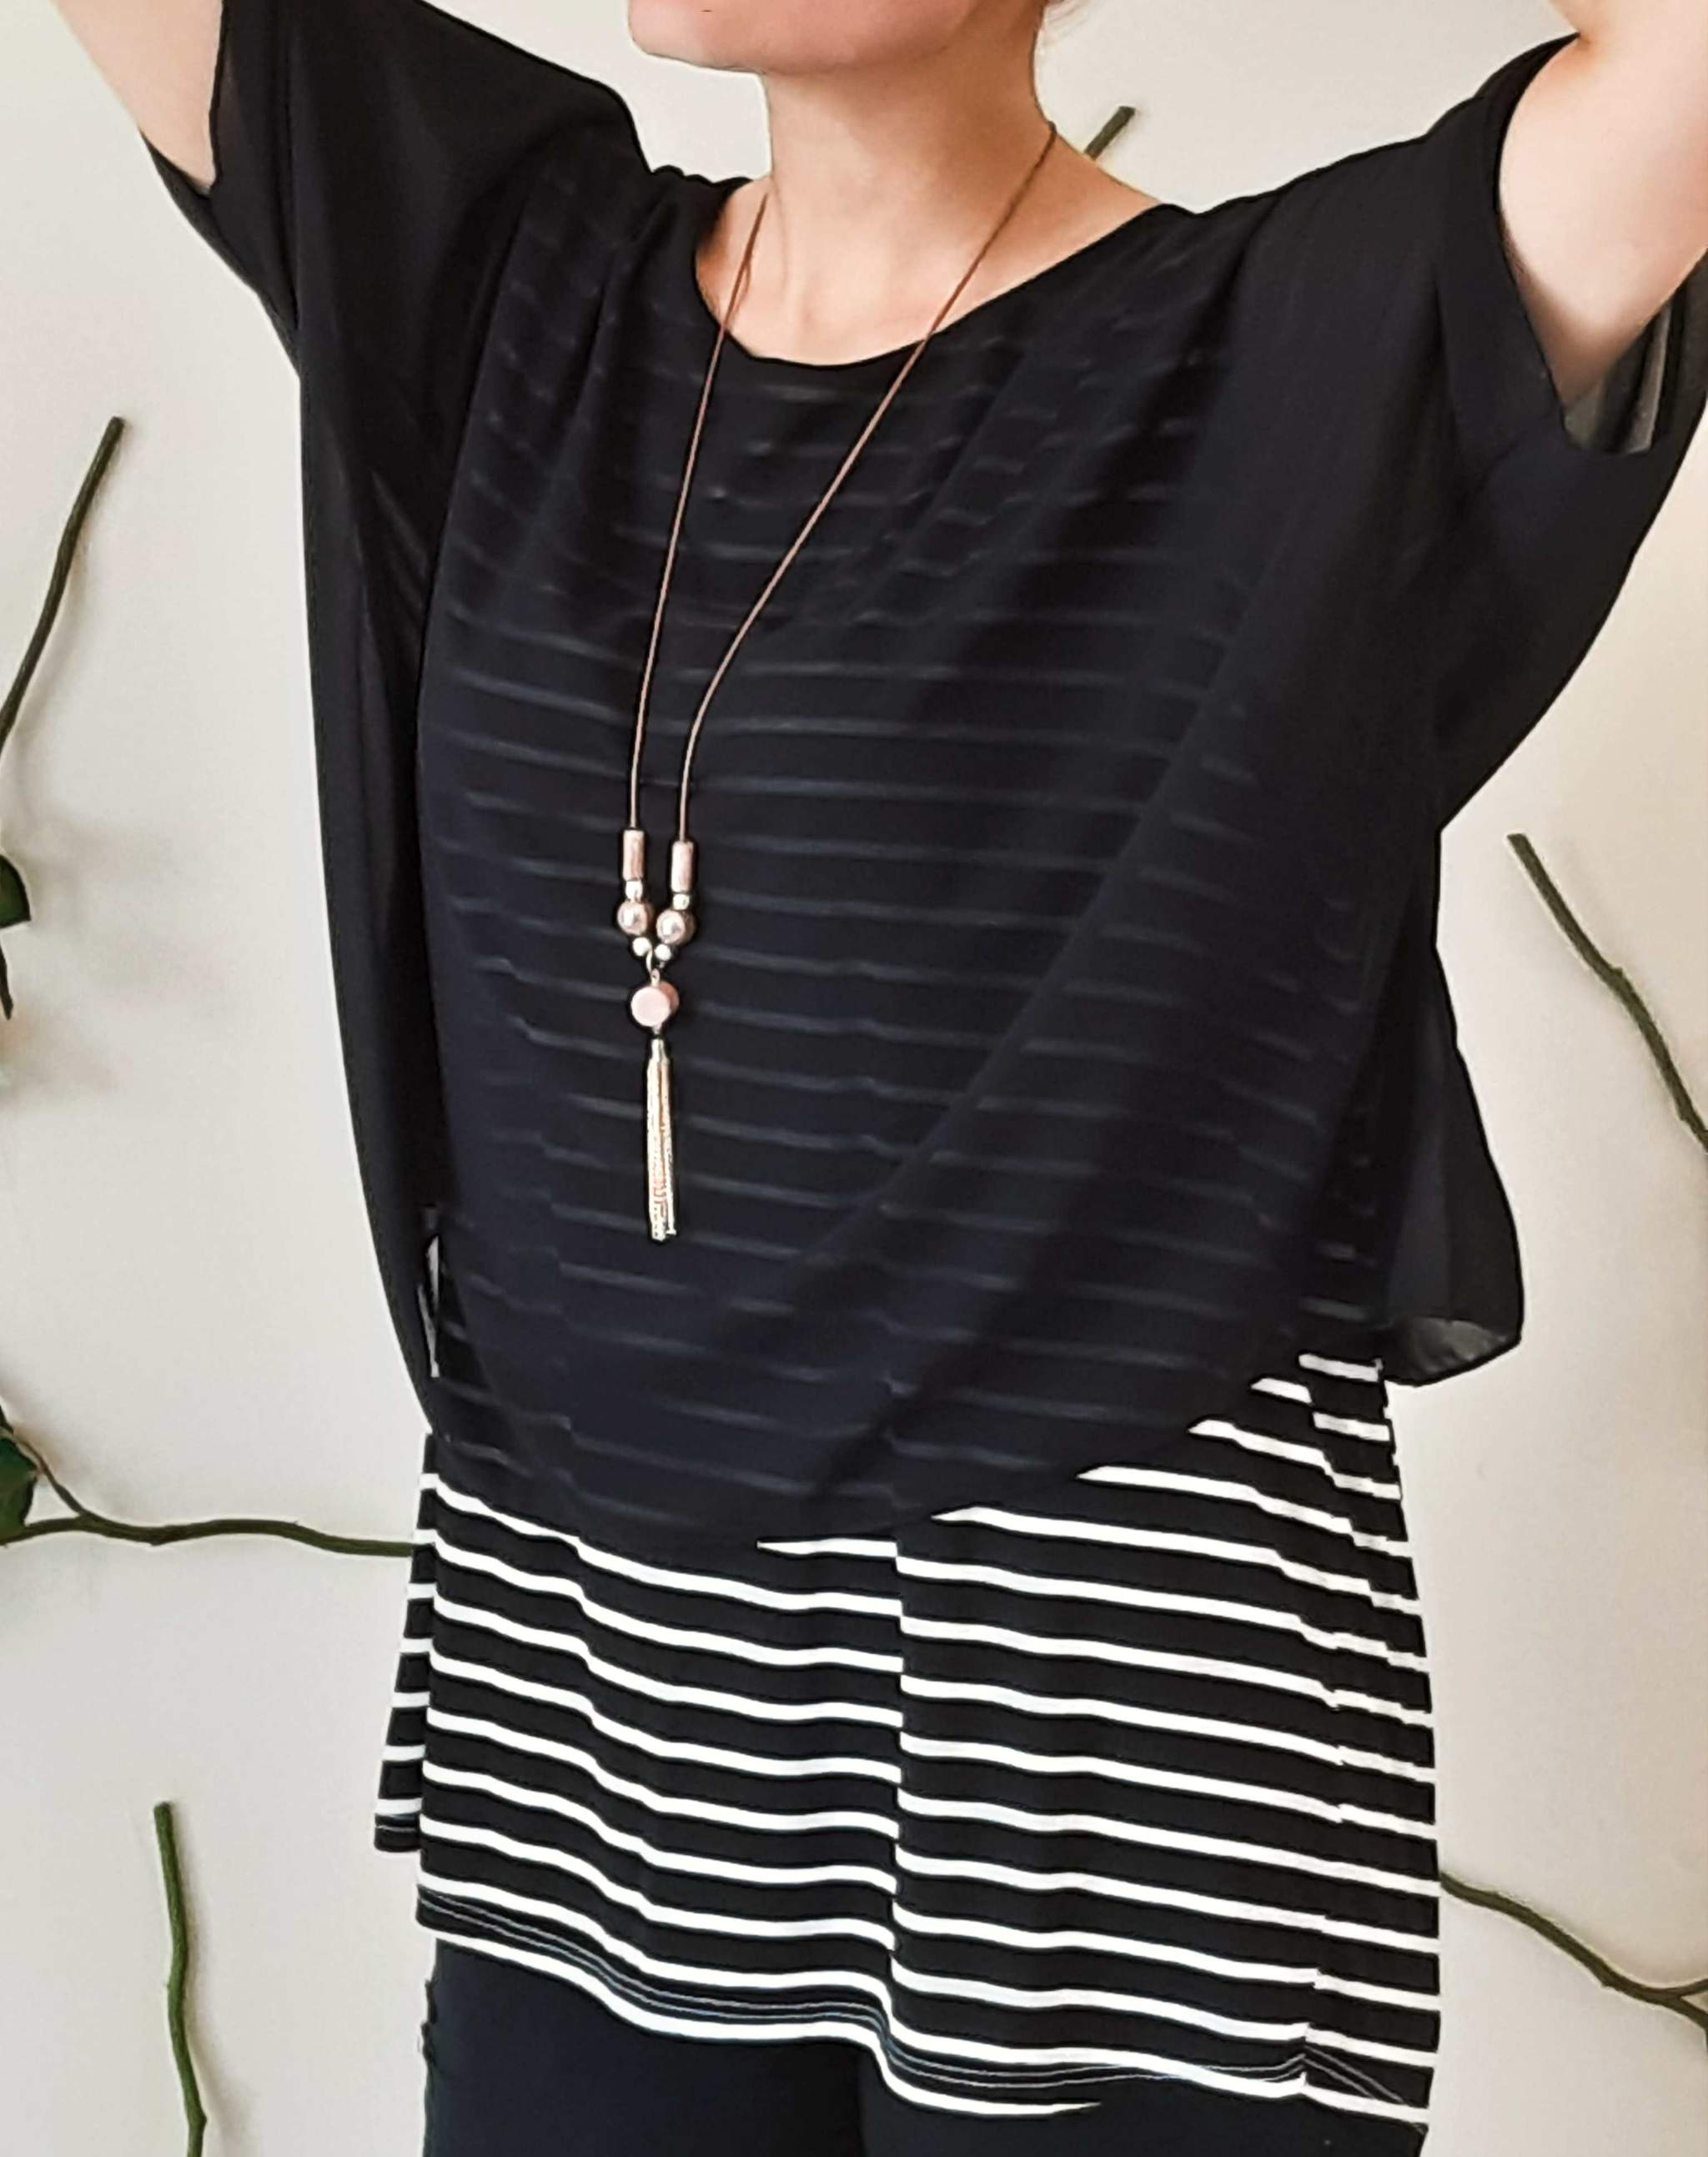 girl-wears-a-black-shirt-with-white-stripes-leftside